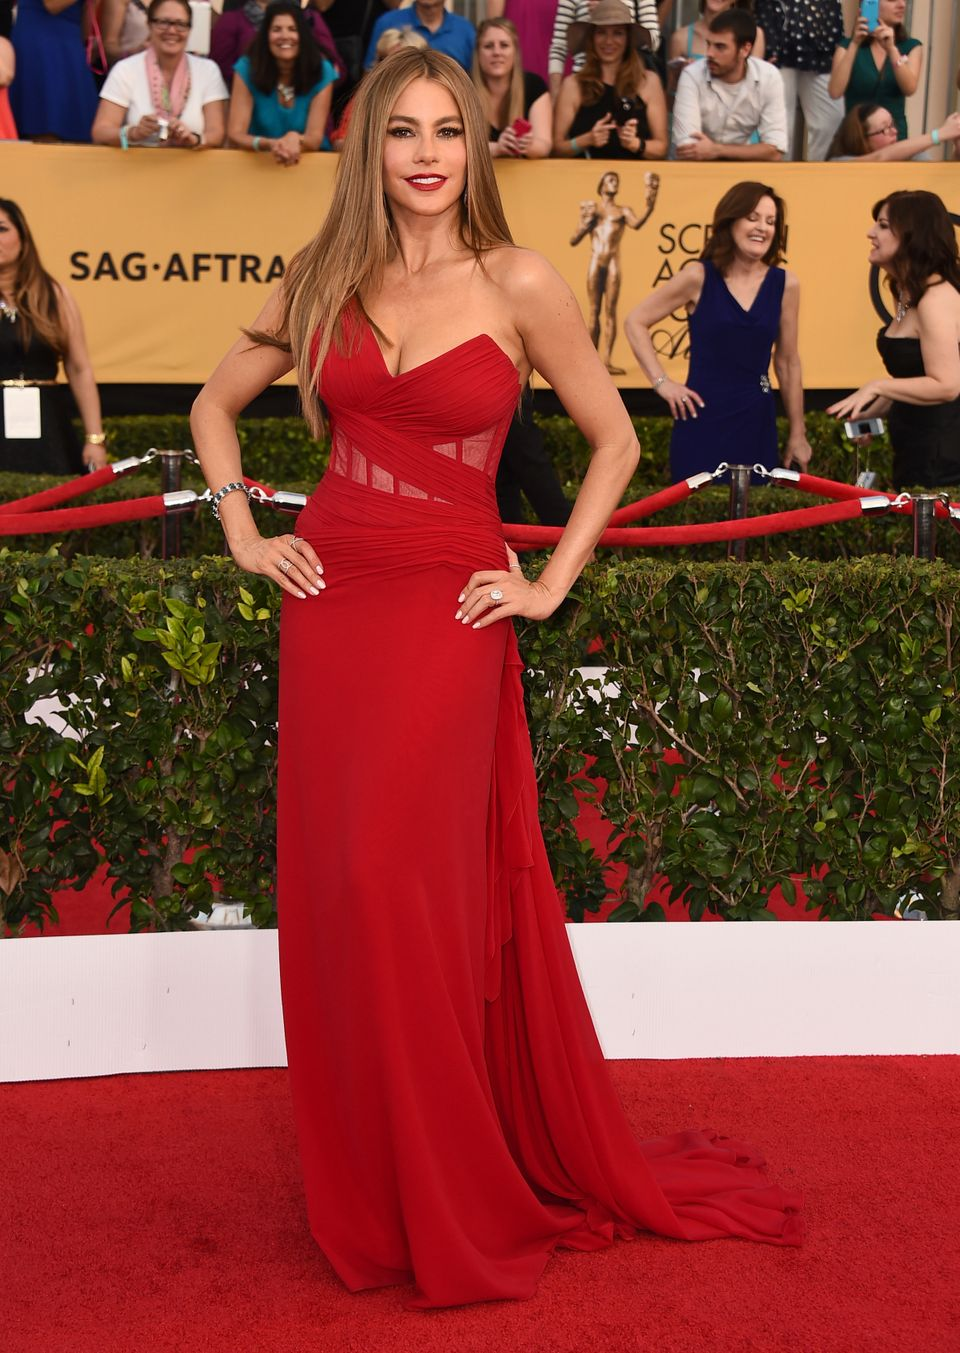 Sofia Vergara arrives at the 21st annual Screen Actors Guild Awards at the Shrine Auditorium on Sunday, Jan. 25, 2015, in Los